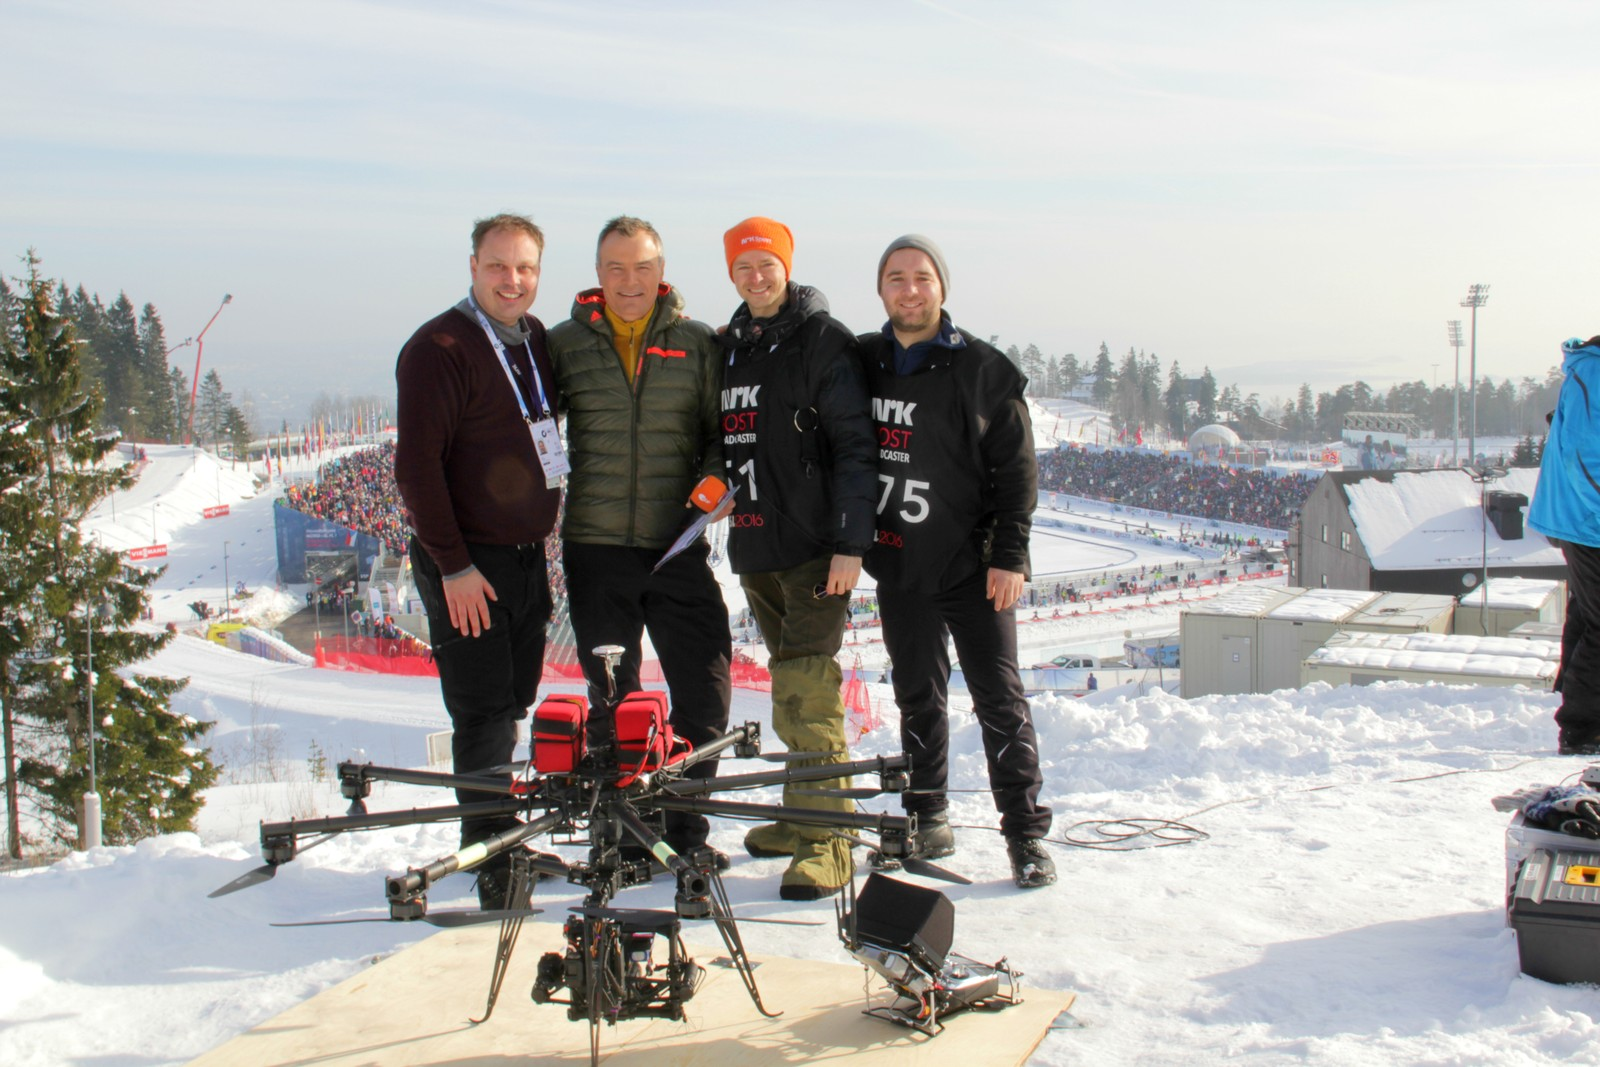 The NRK Host Broadcaster drone crew on an assignment for the German TV crew.